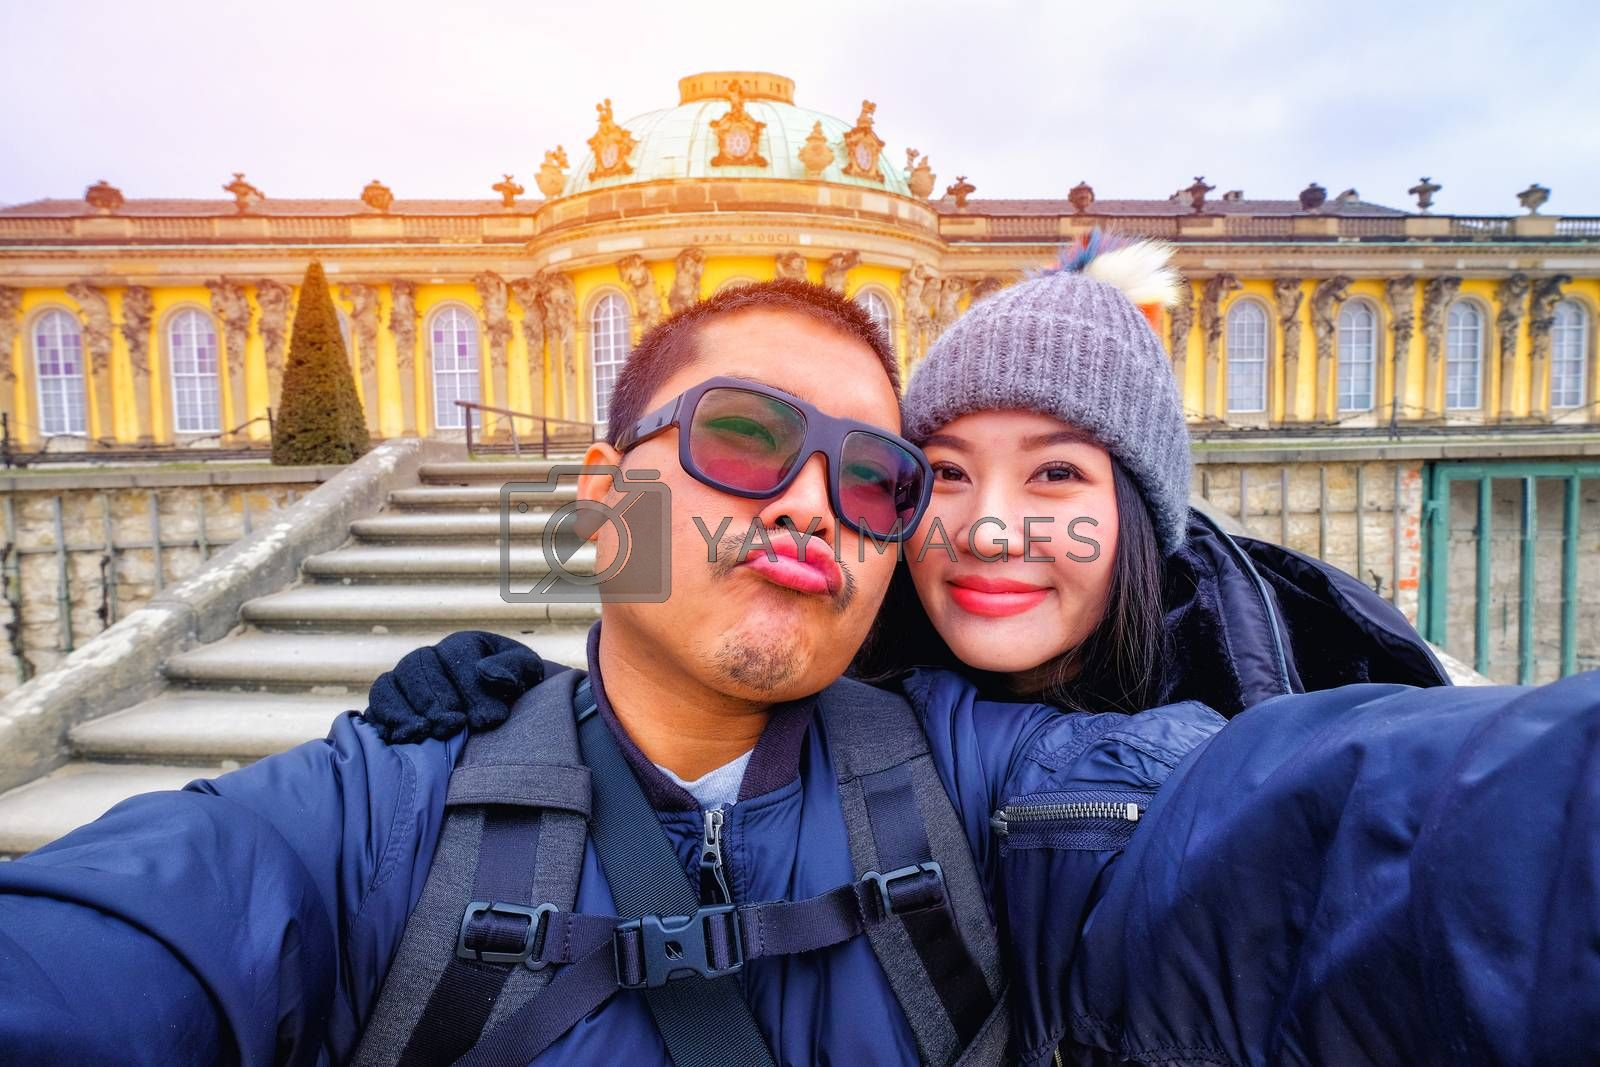 Young Couple Tourists selfie with smartphone at Sans Souci palace in Potsdam, Berlin, Germany